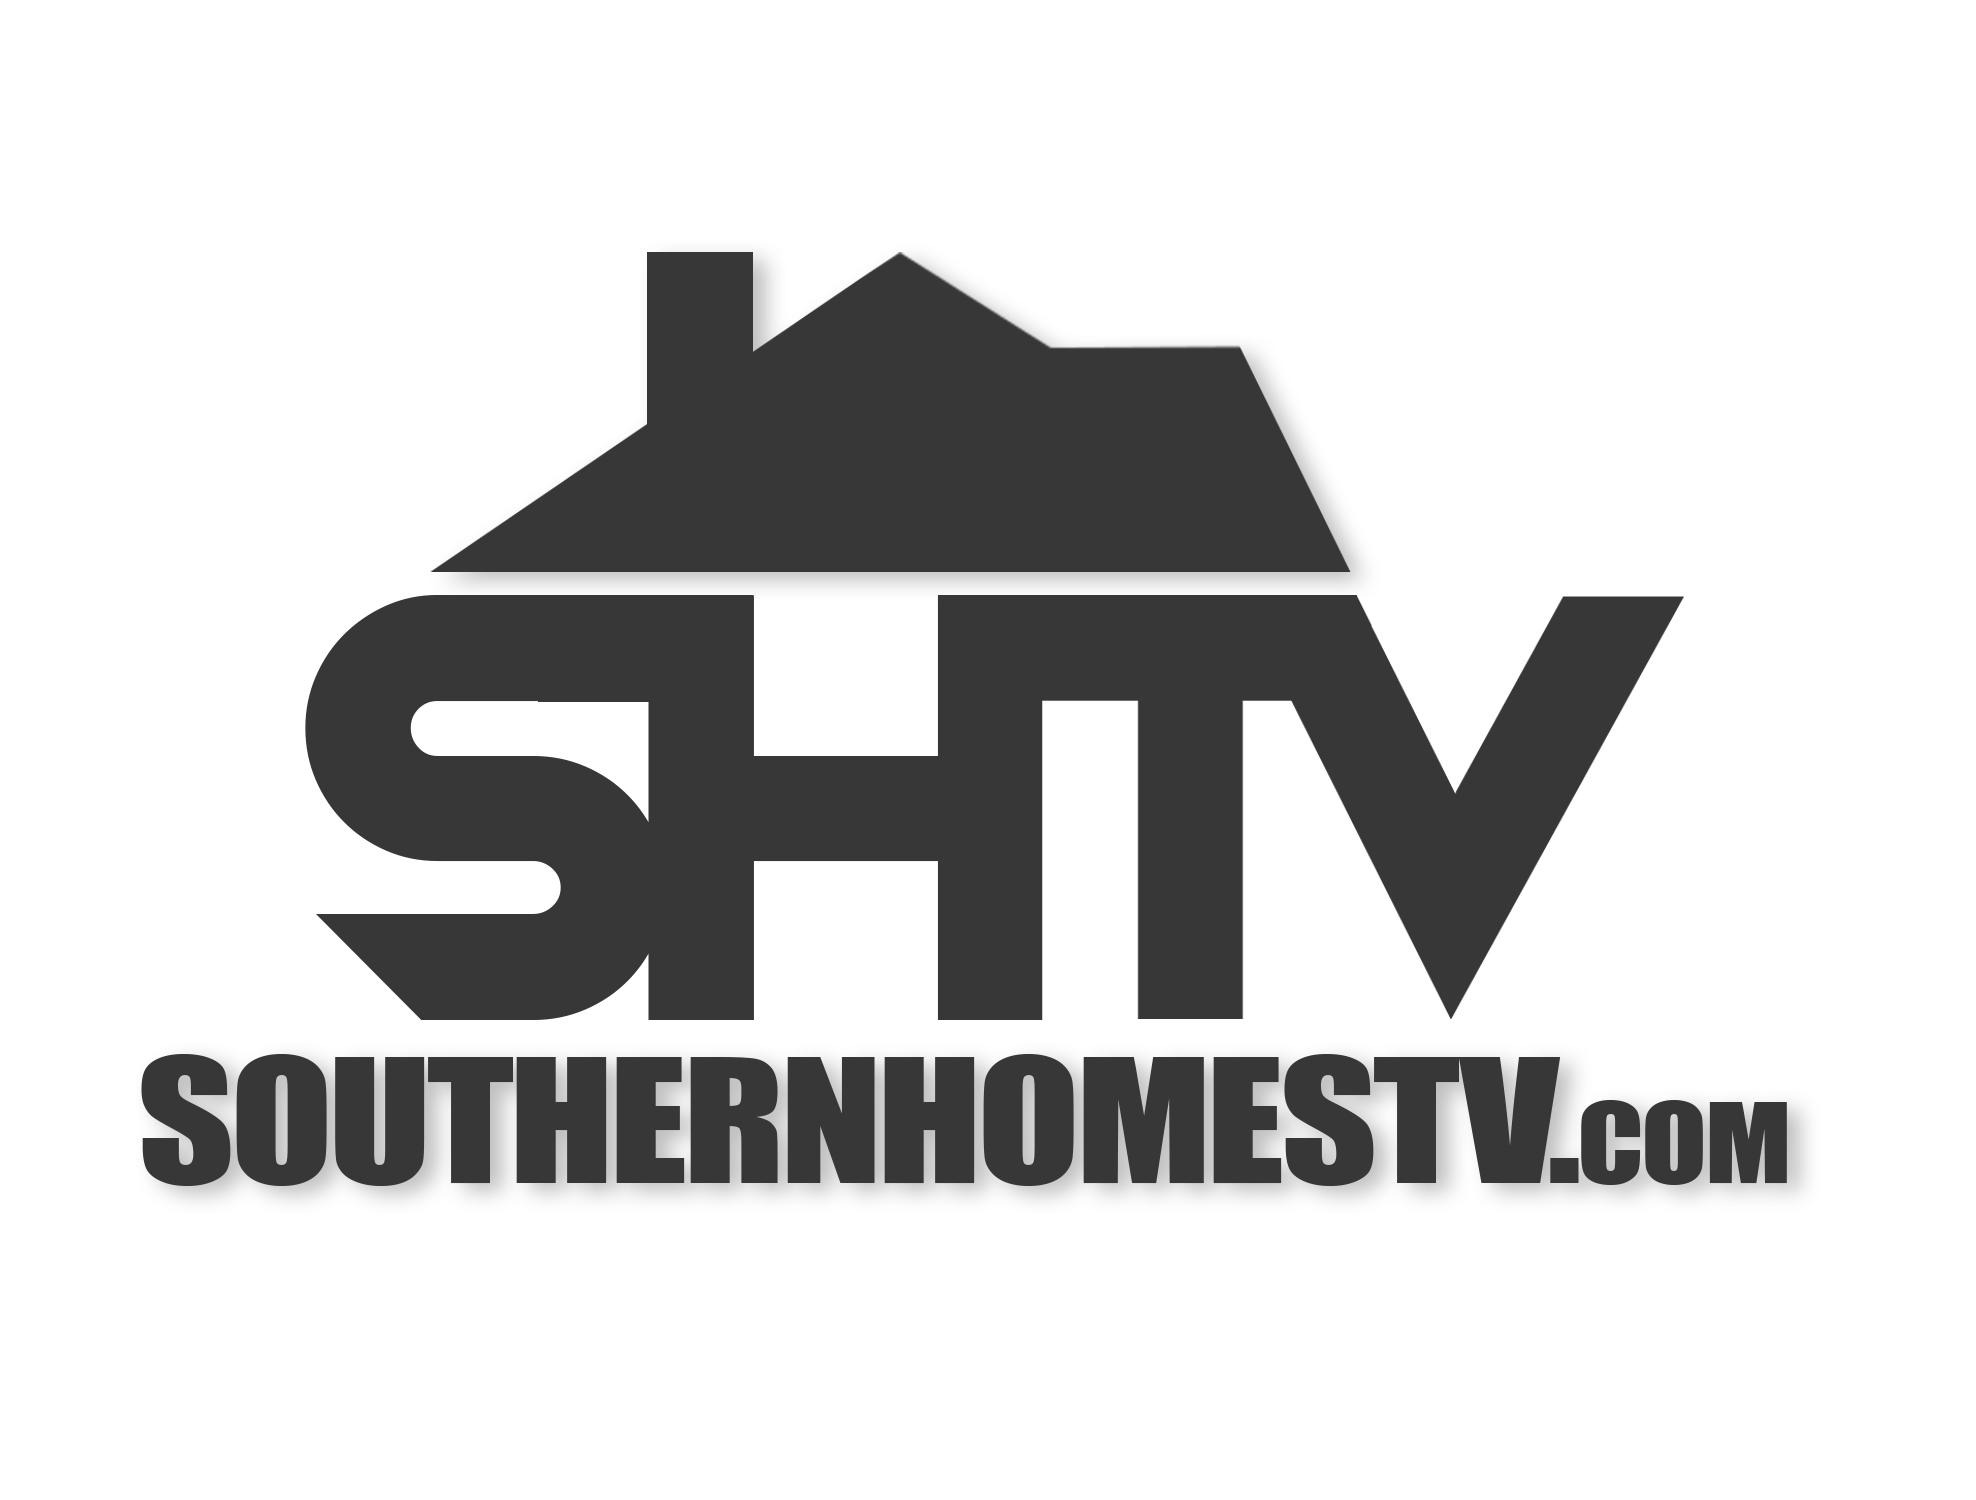 southern home tv logo